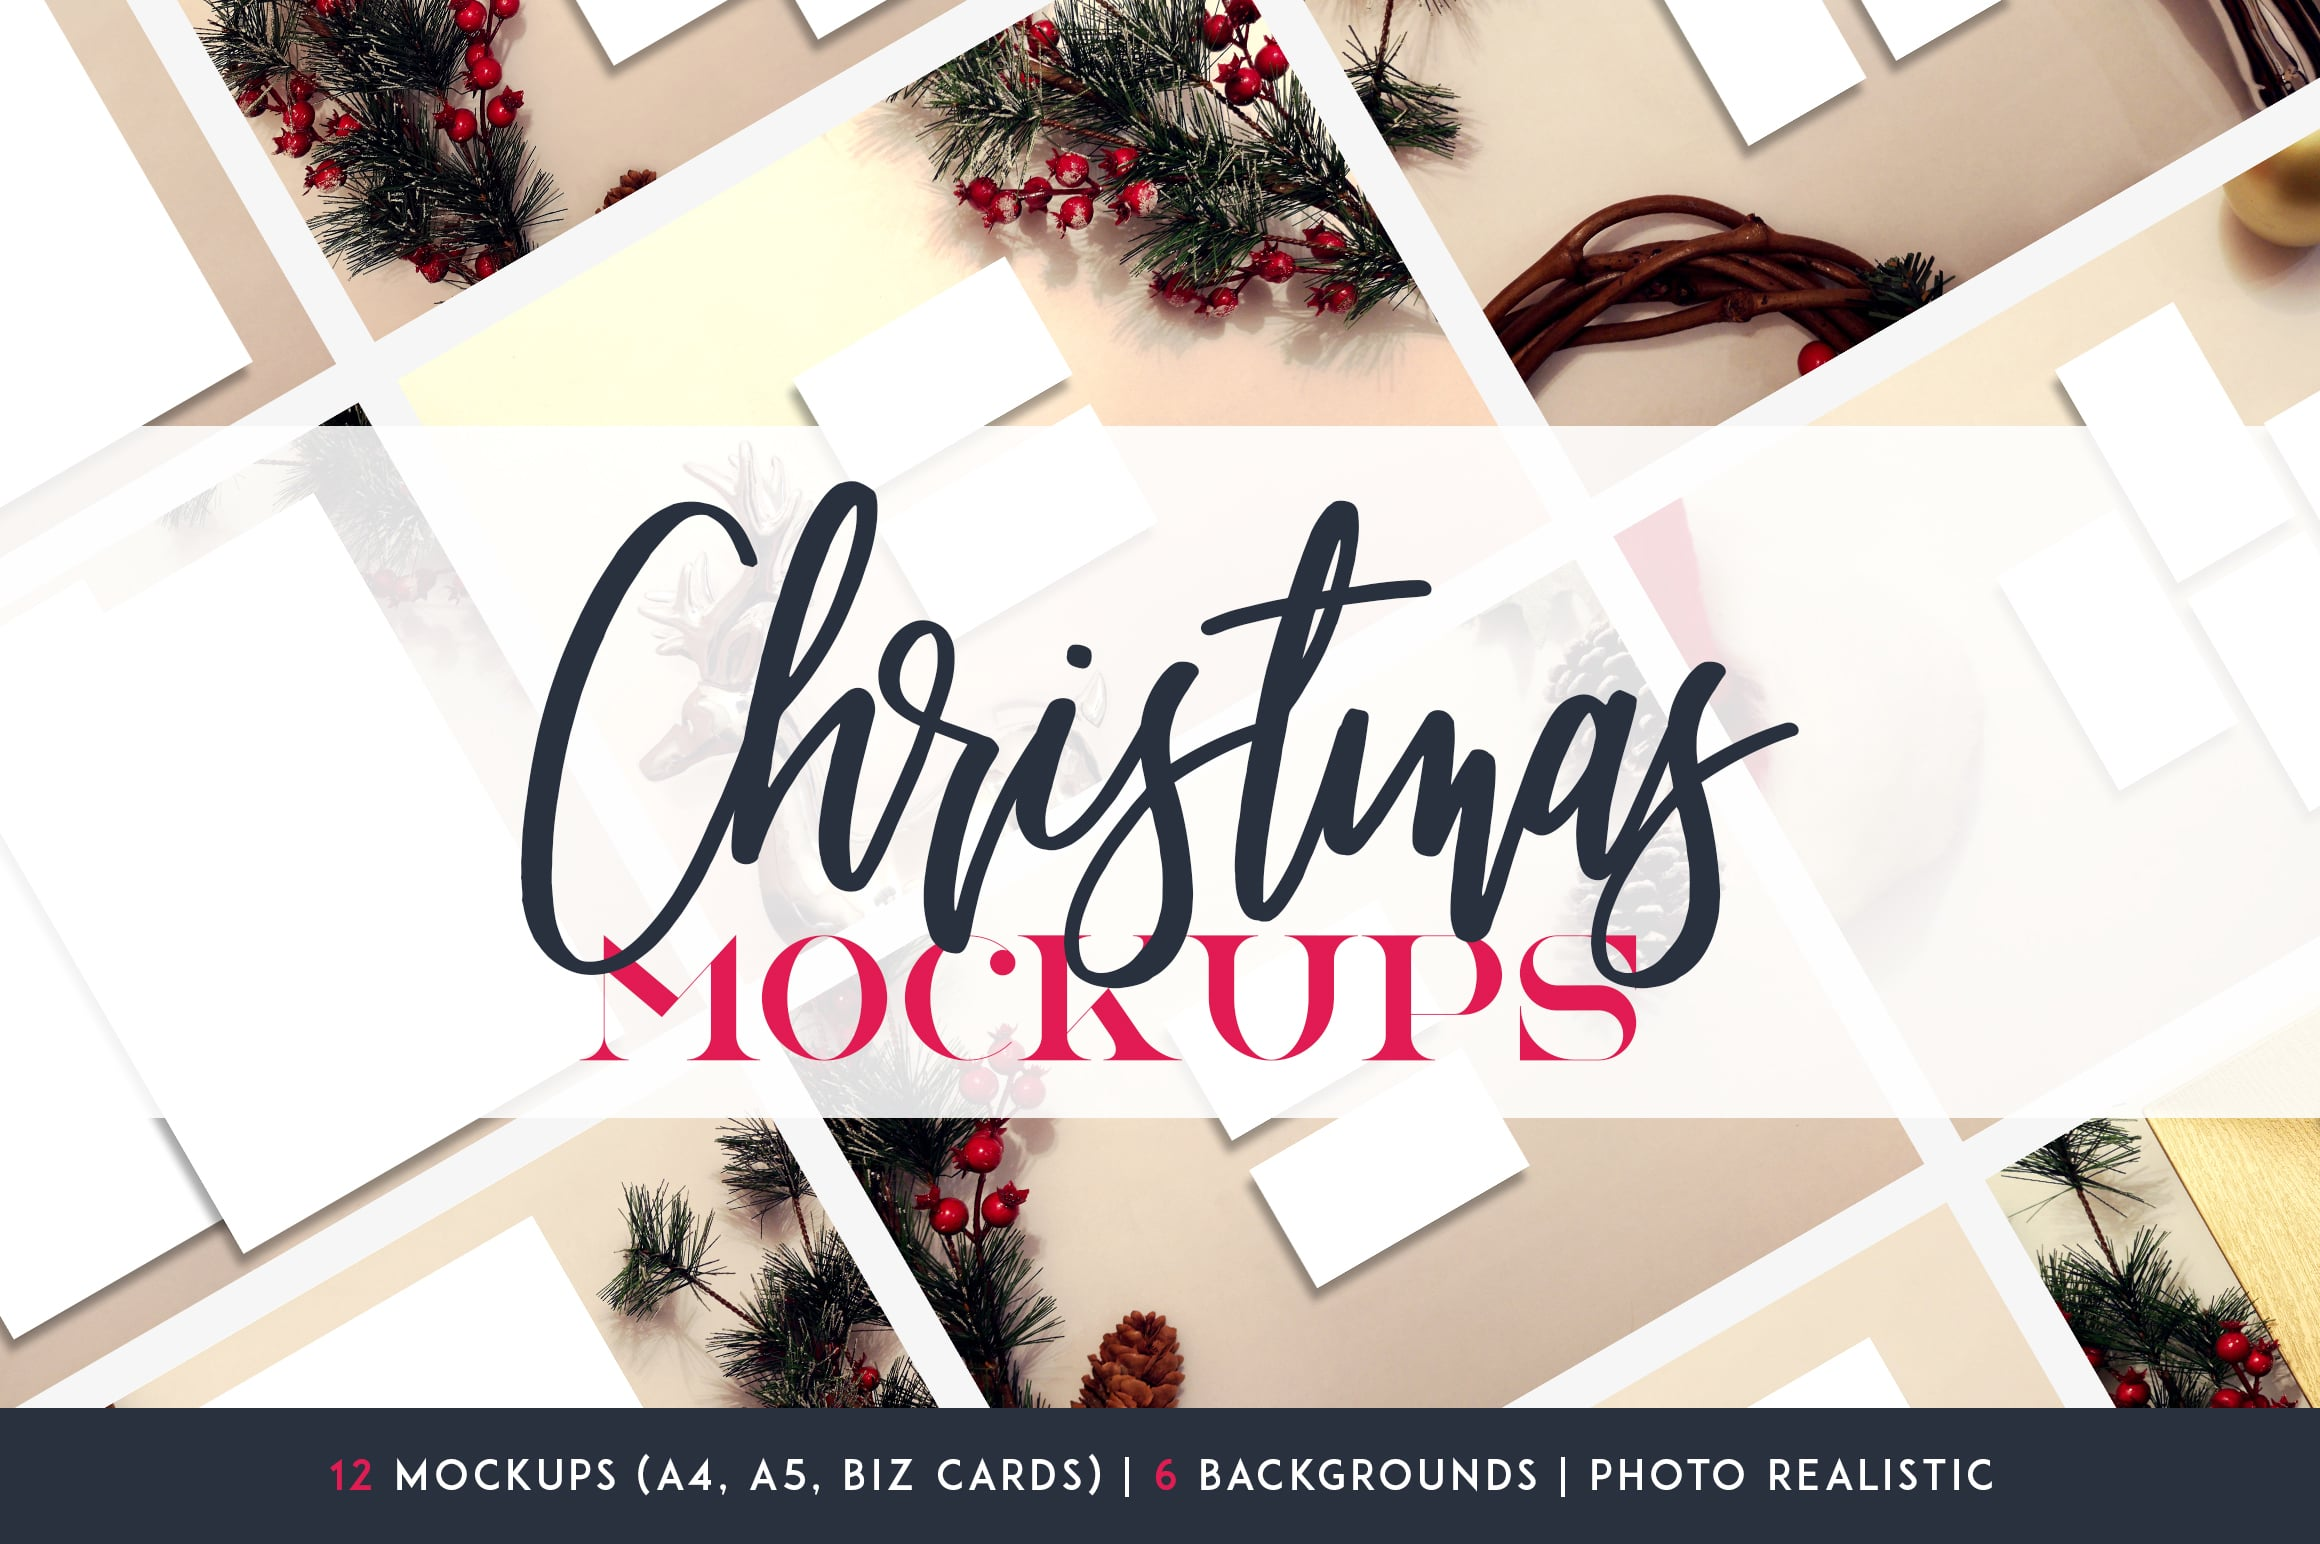 12 Christmas Mockups + Backgrounds - $9 ONLY - 1 4